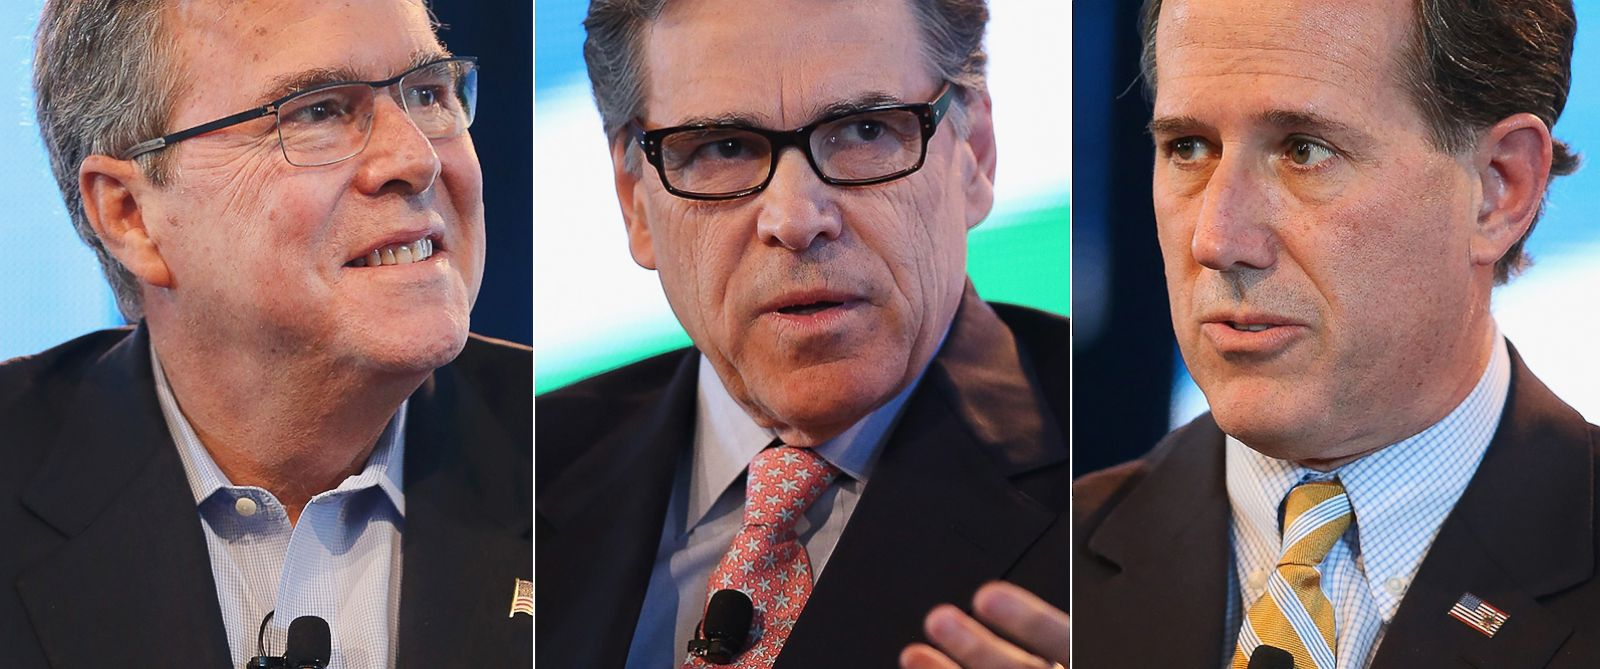 PHOTO: Jeb Bush | Rick Perry | Rick Santorum